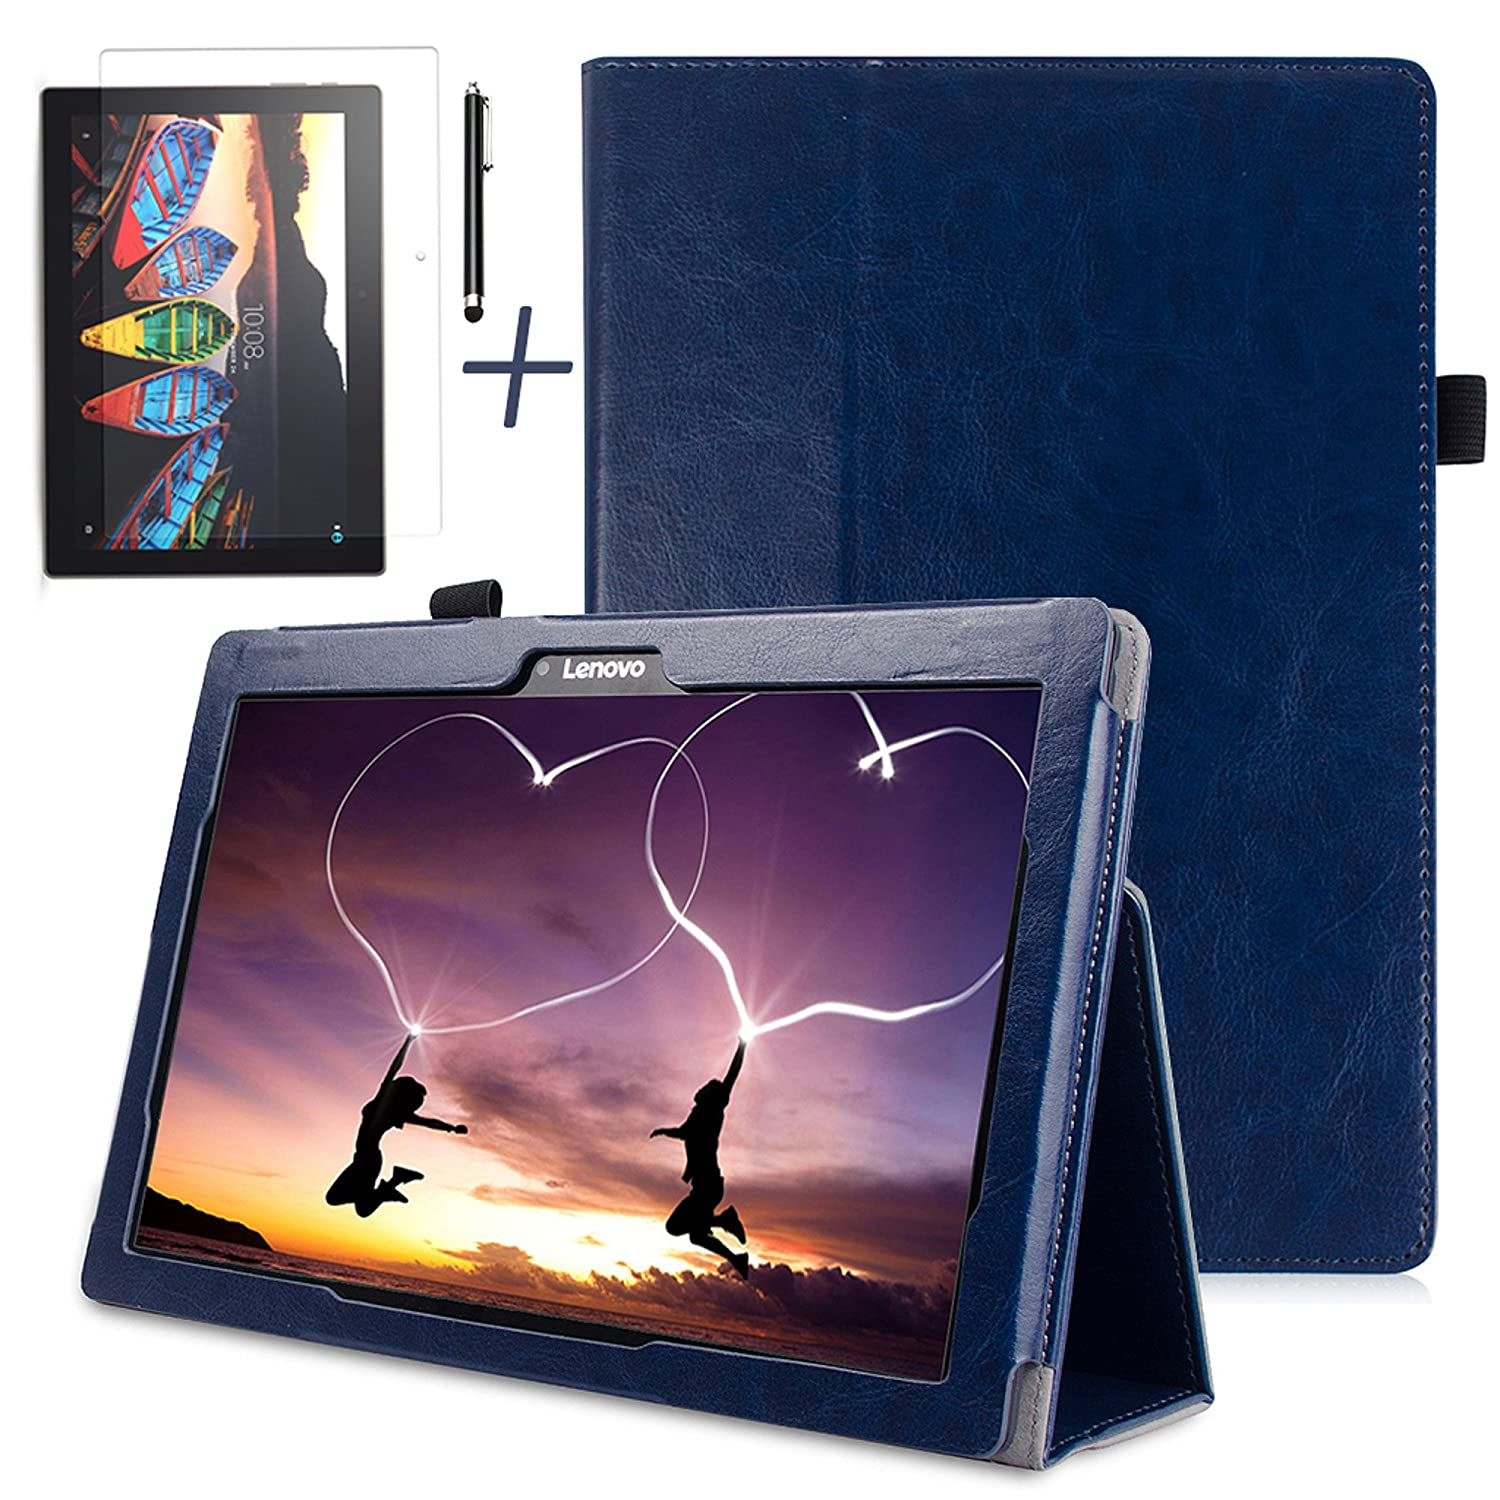 Gard/® Lenovo Tab 3 10.1 Inch 16GB Tablet Purple Luxury PU Leather Case Cover With Tempered Glass Screen Protector,Stylus will not fit the new Tab E10 32Gb, 2018